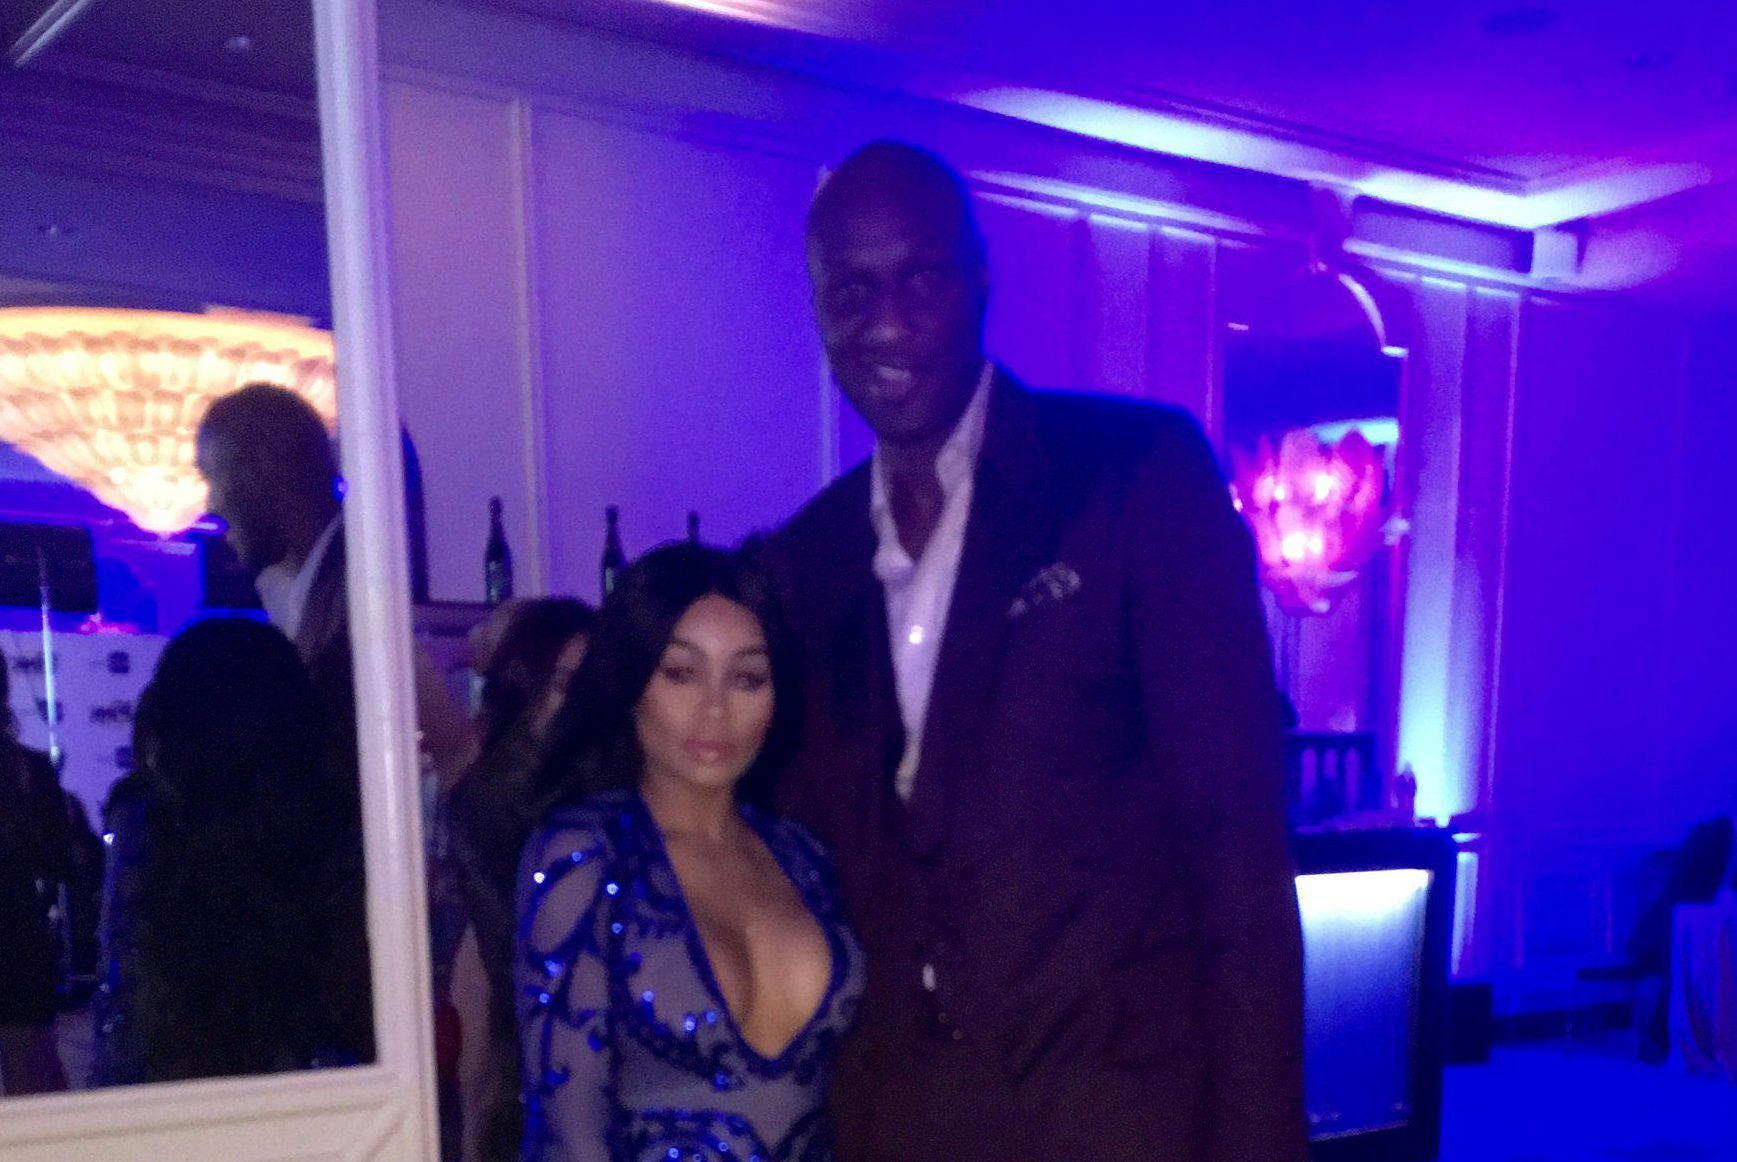 Keeping Away From The Kardashians? Blac Chyna and Lamar Odom spotted together